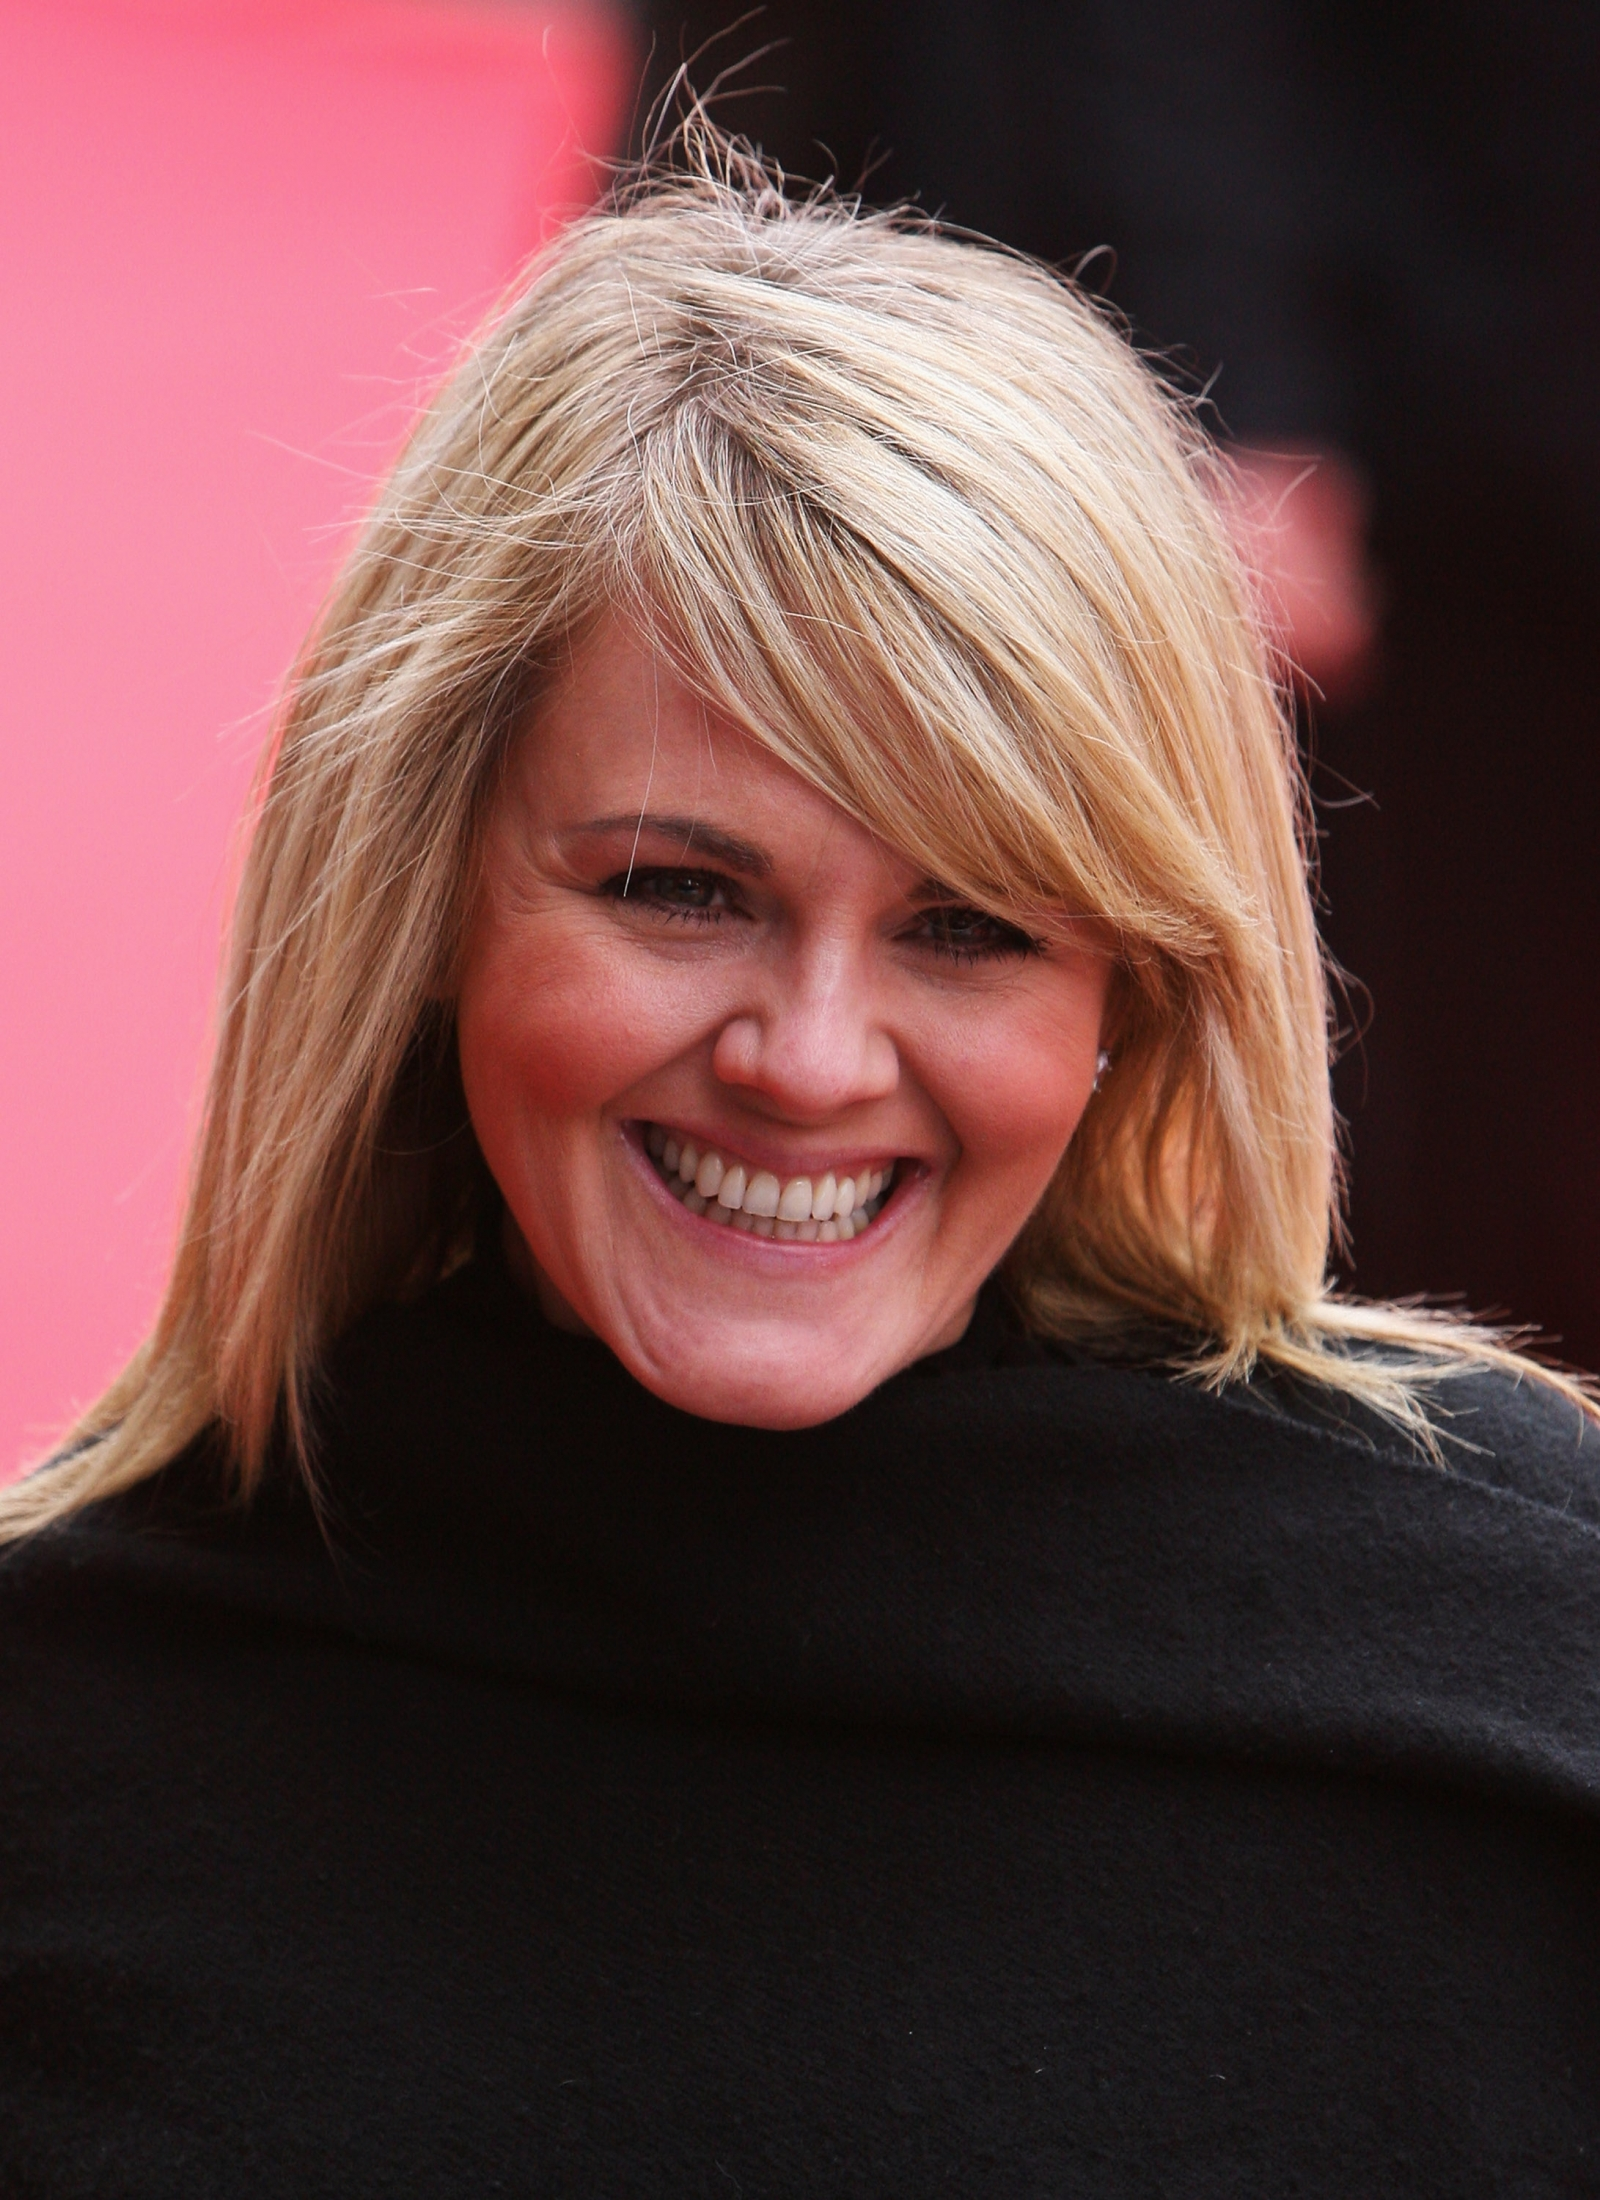 Sex Sally Lindsay nudes (83 photos), Topless, Paparazzi, Feet, see through 2020